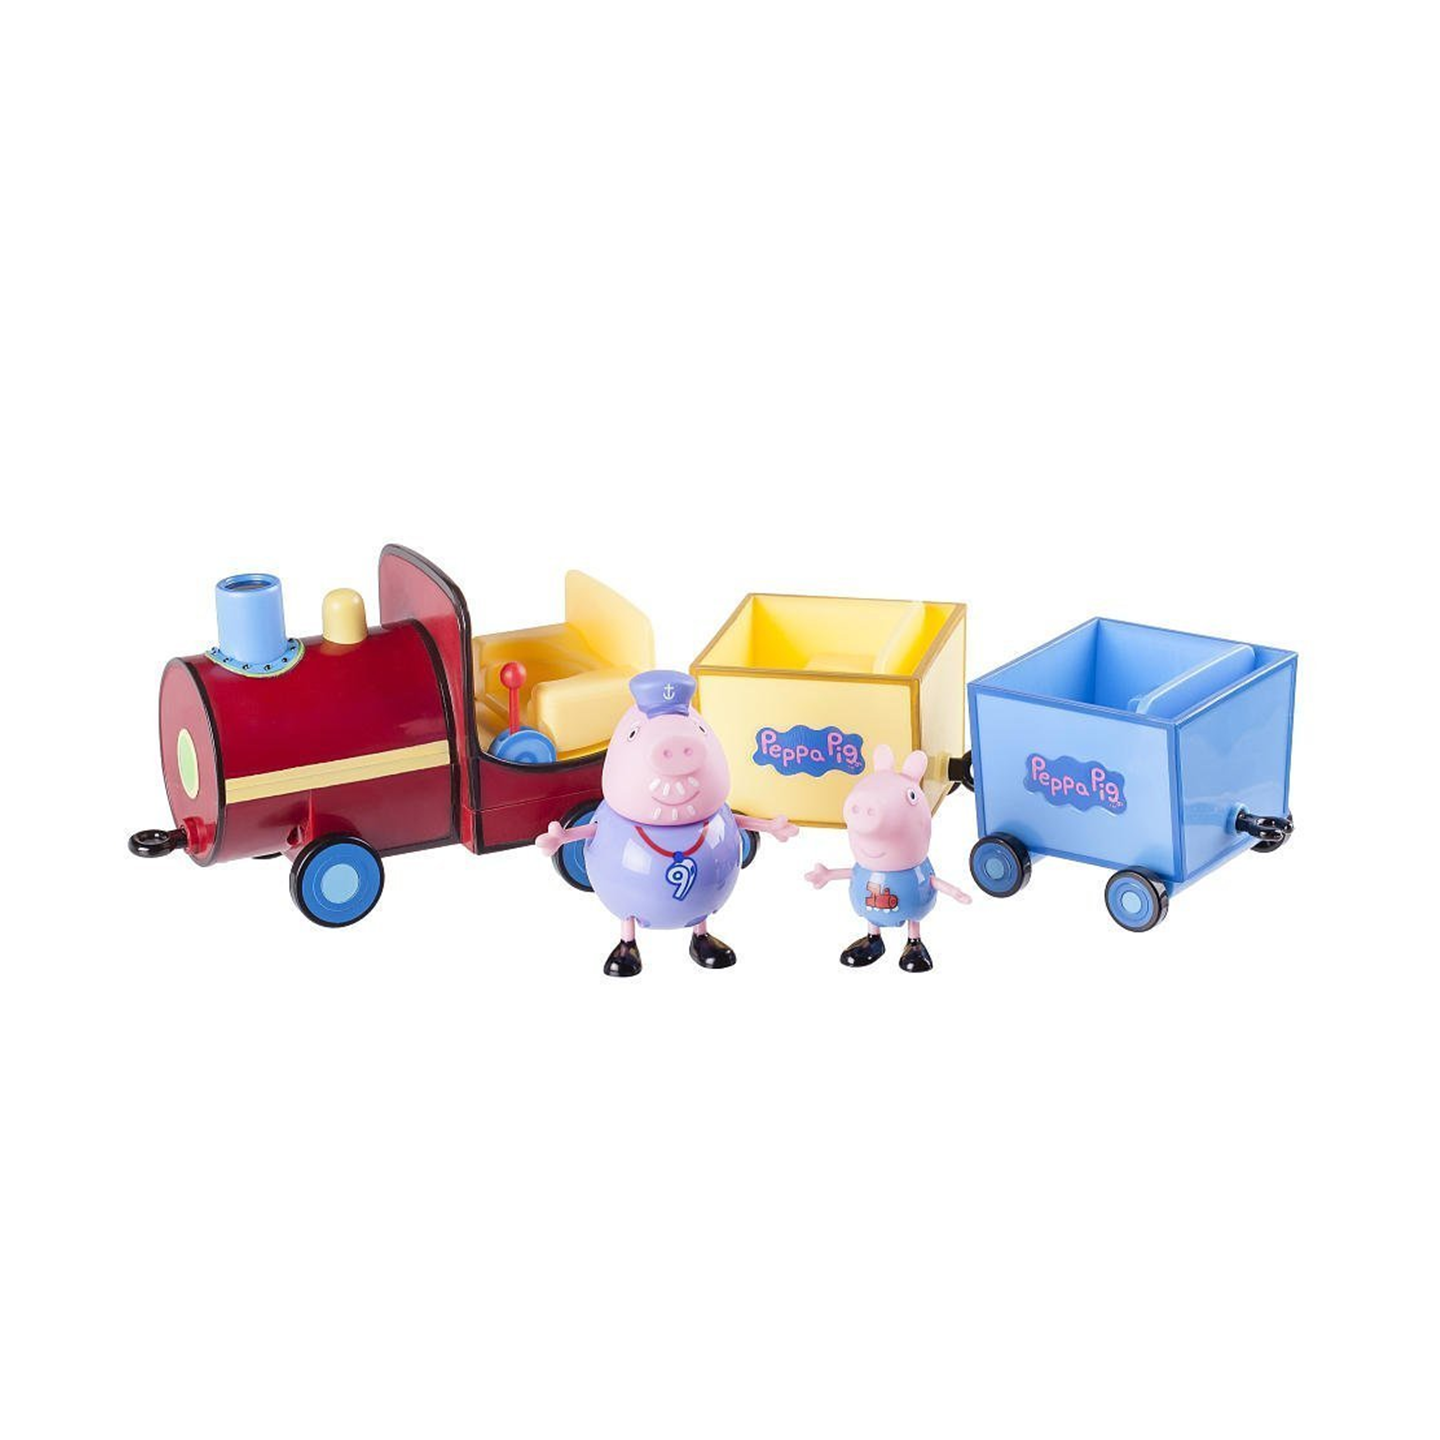 PP120503400000 Peppa Pig's Grandpa Train Without Sound(2)